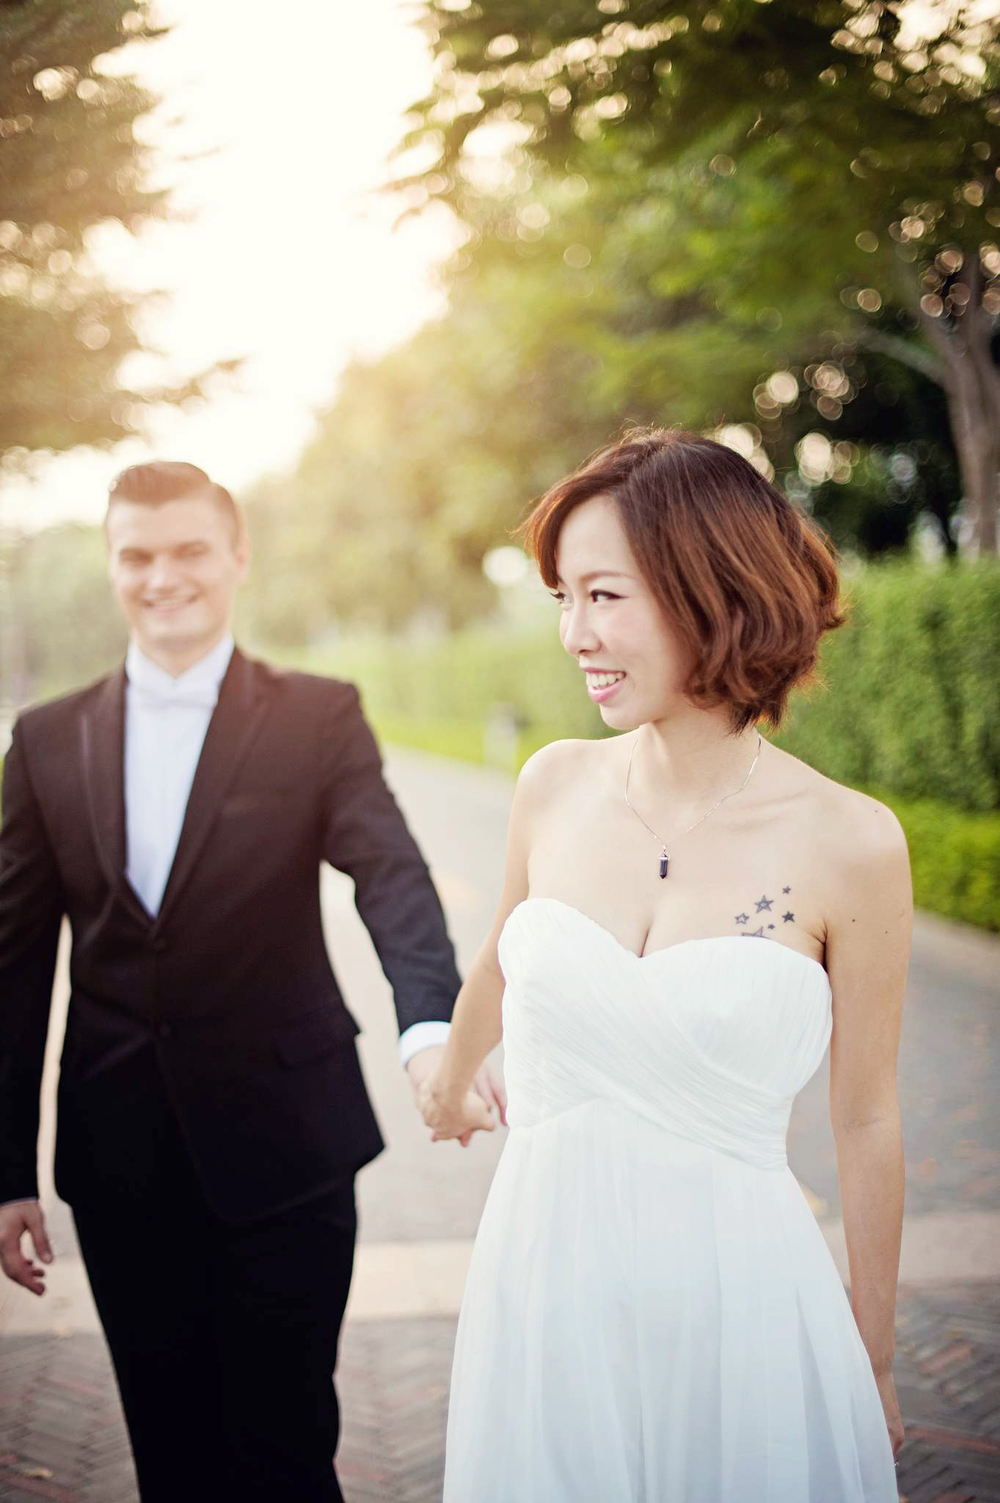 Chris_Hui_ShenZhen_Prewedding_Photography221.jpg